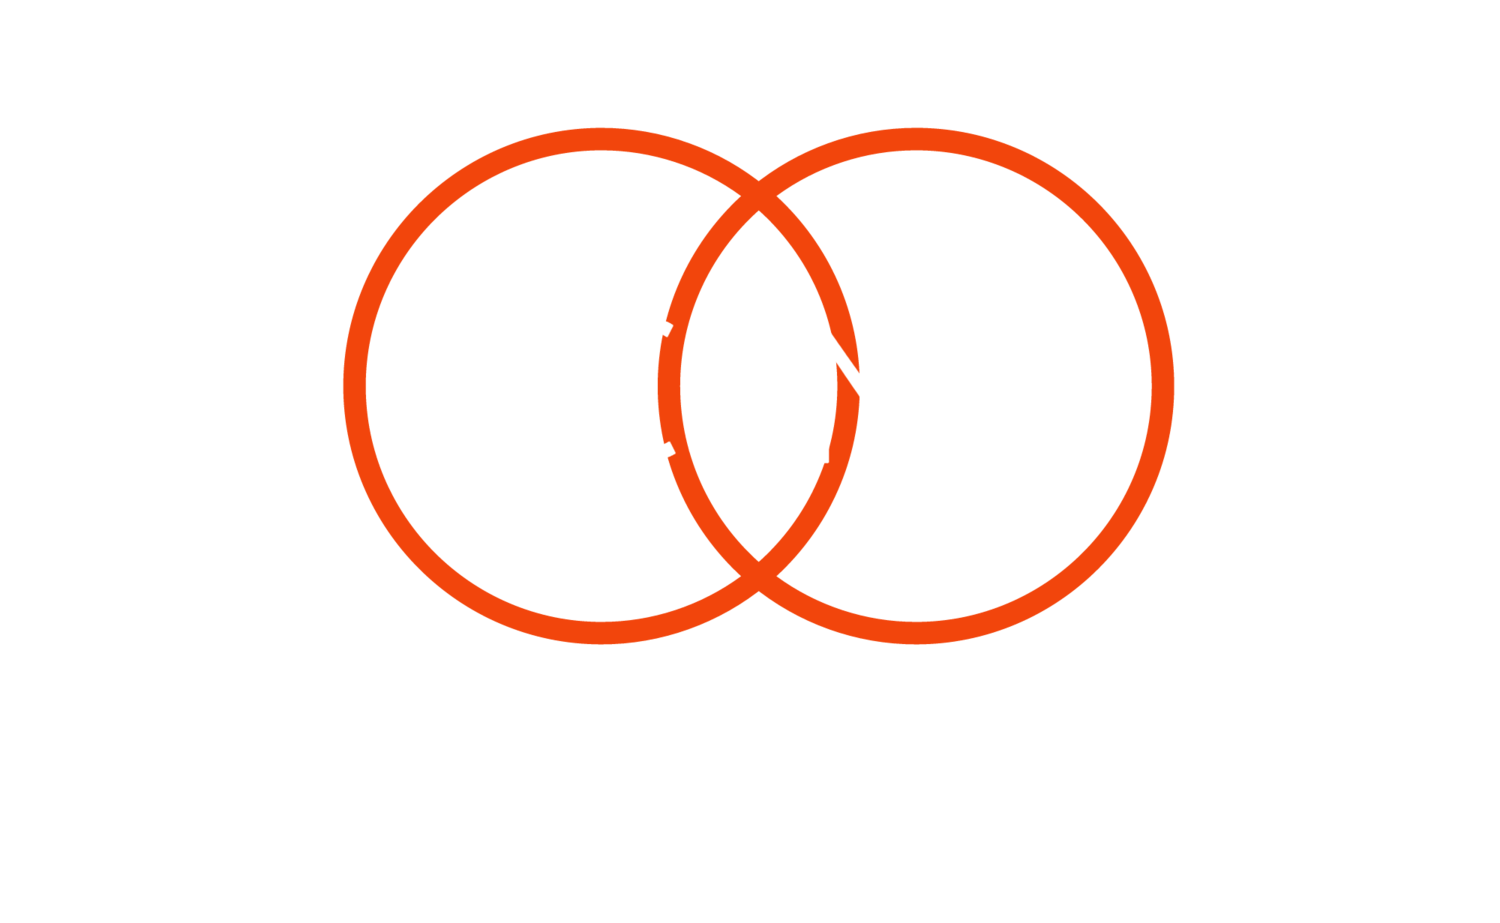 Australia China SME Association